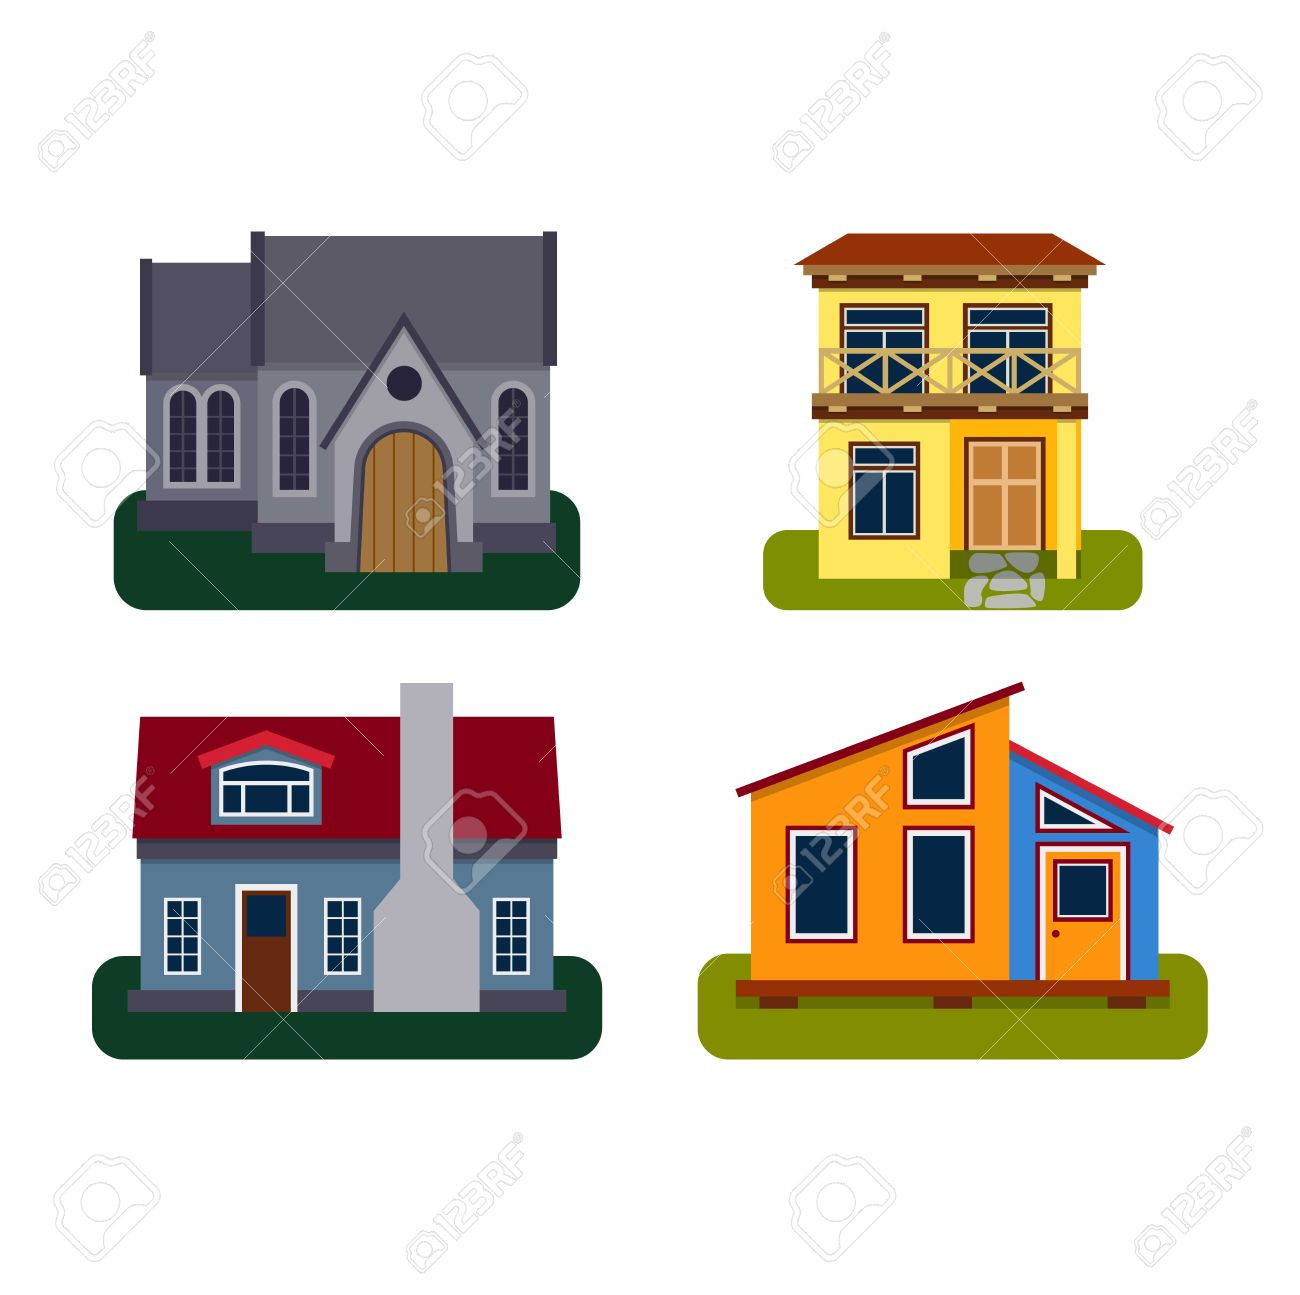 Houses Front View Vector Illustration Houses Flat Style Modern